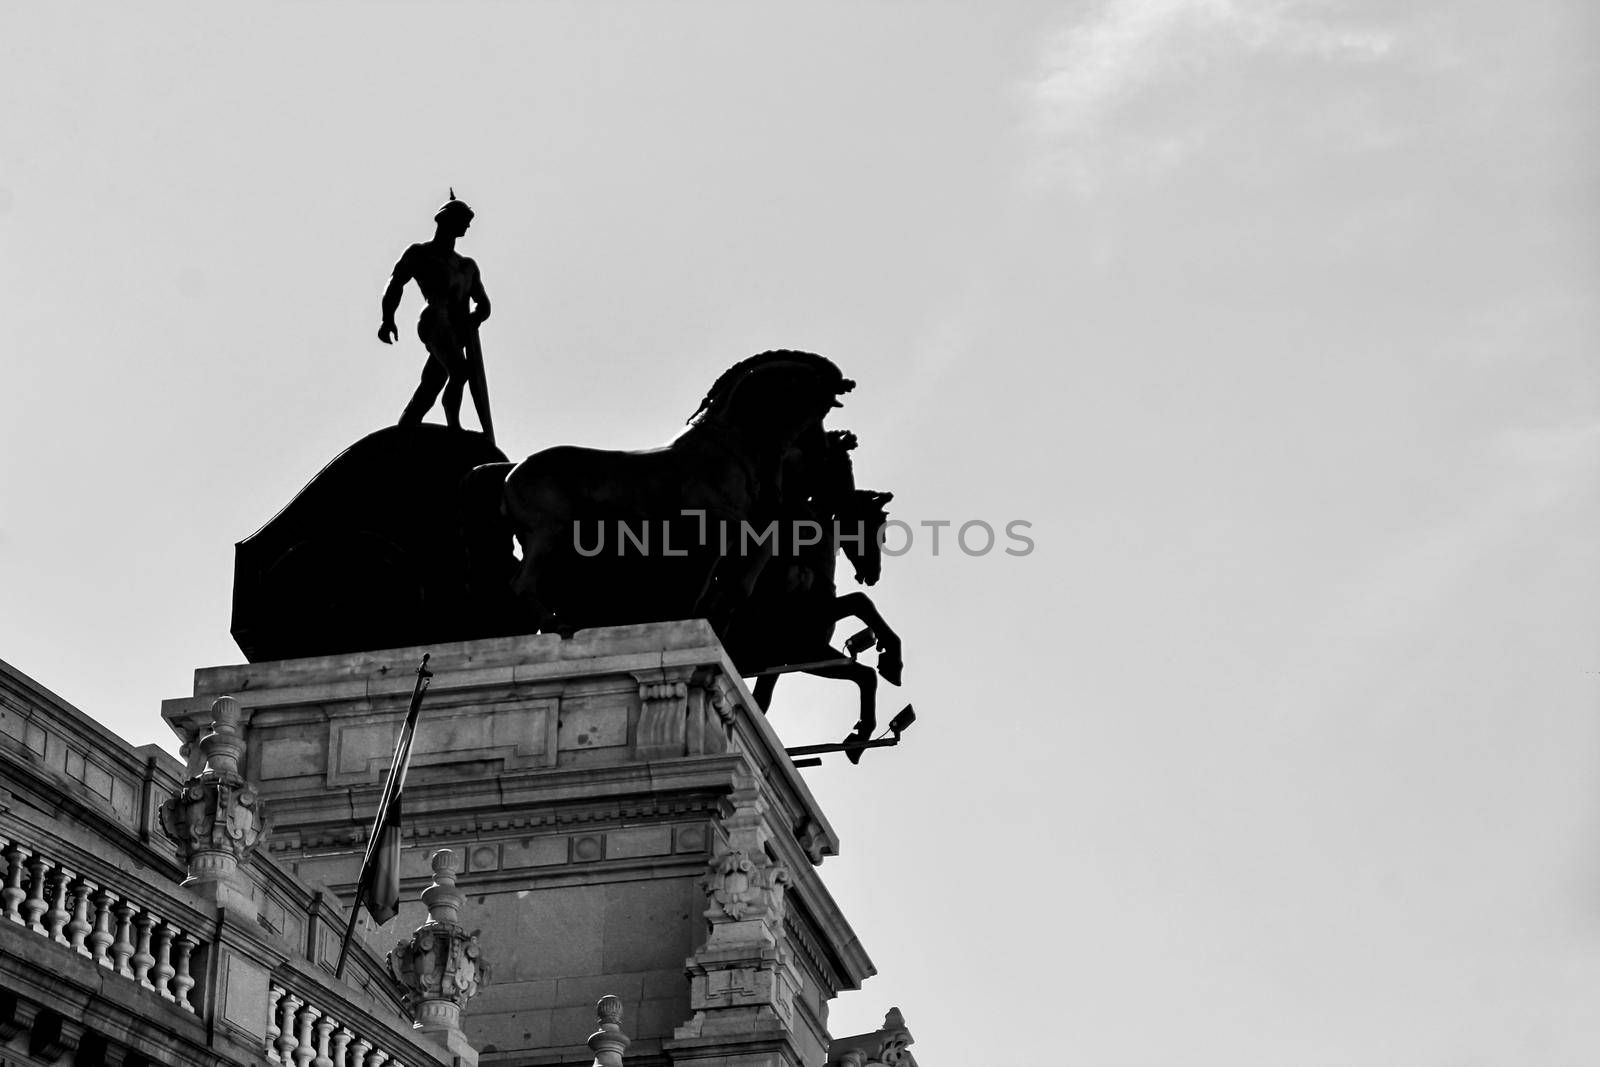 Beautiful quadriga statue on the roof of a building in Madrid